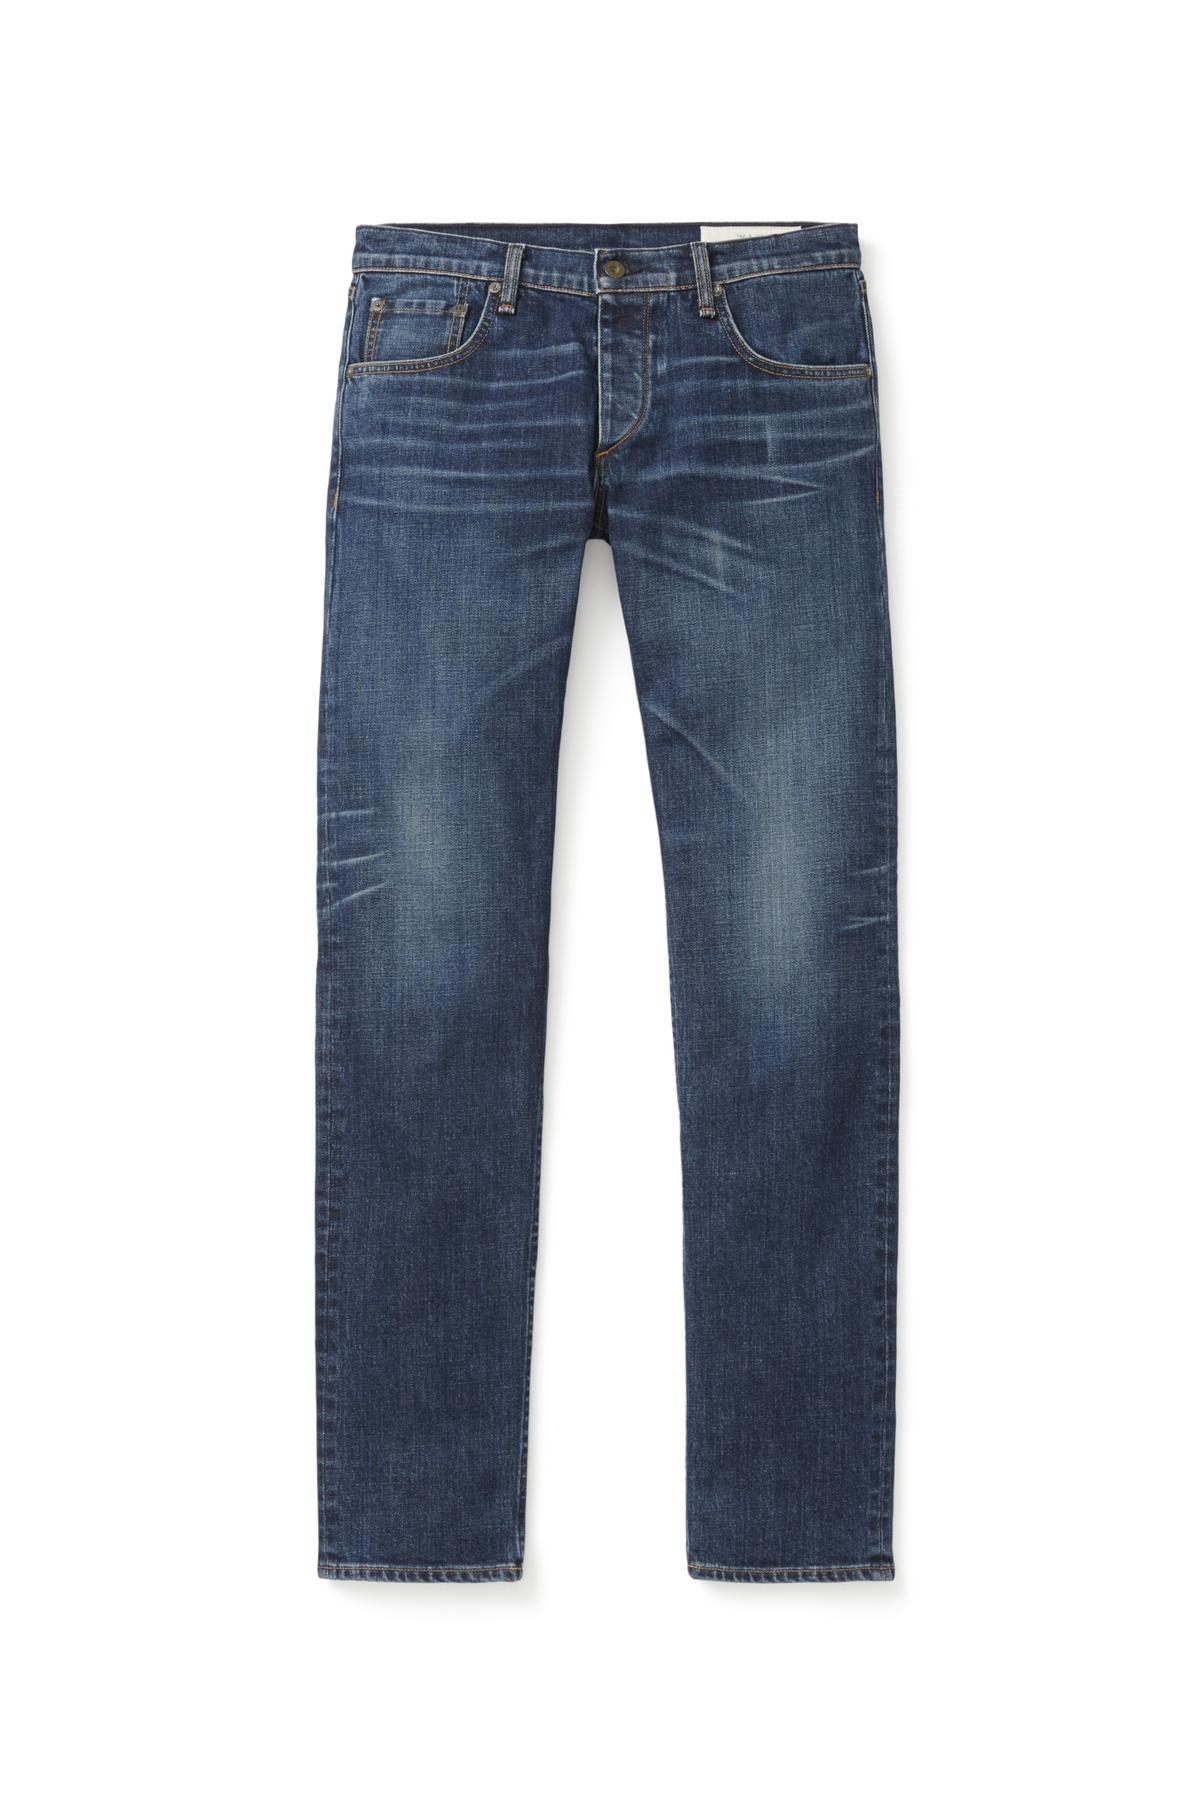 RAG & BONE FIT 2 JEAN